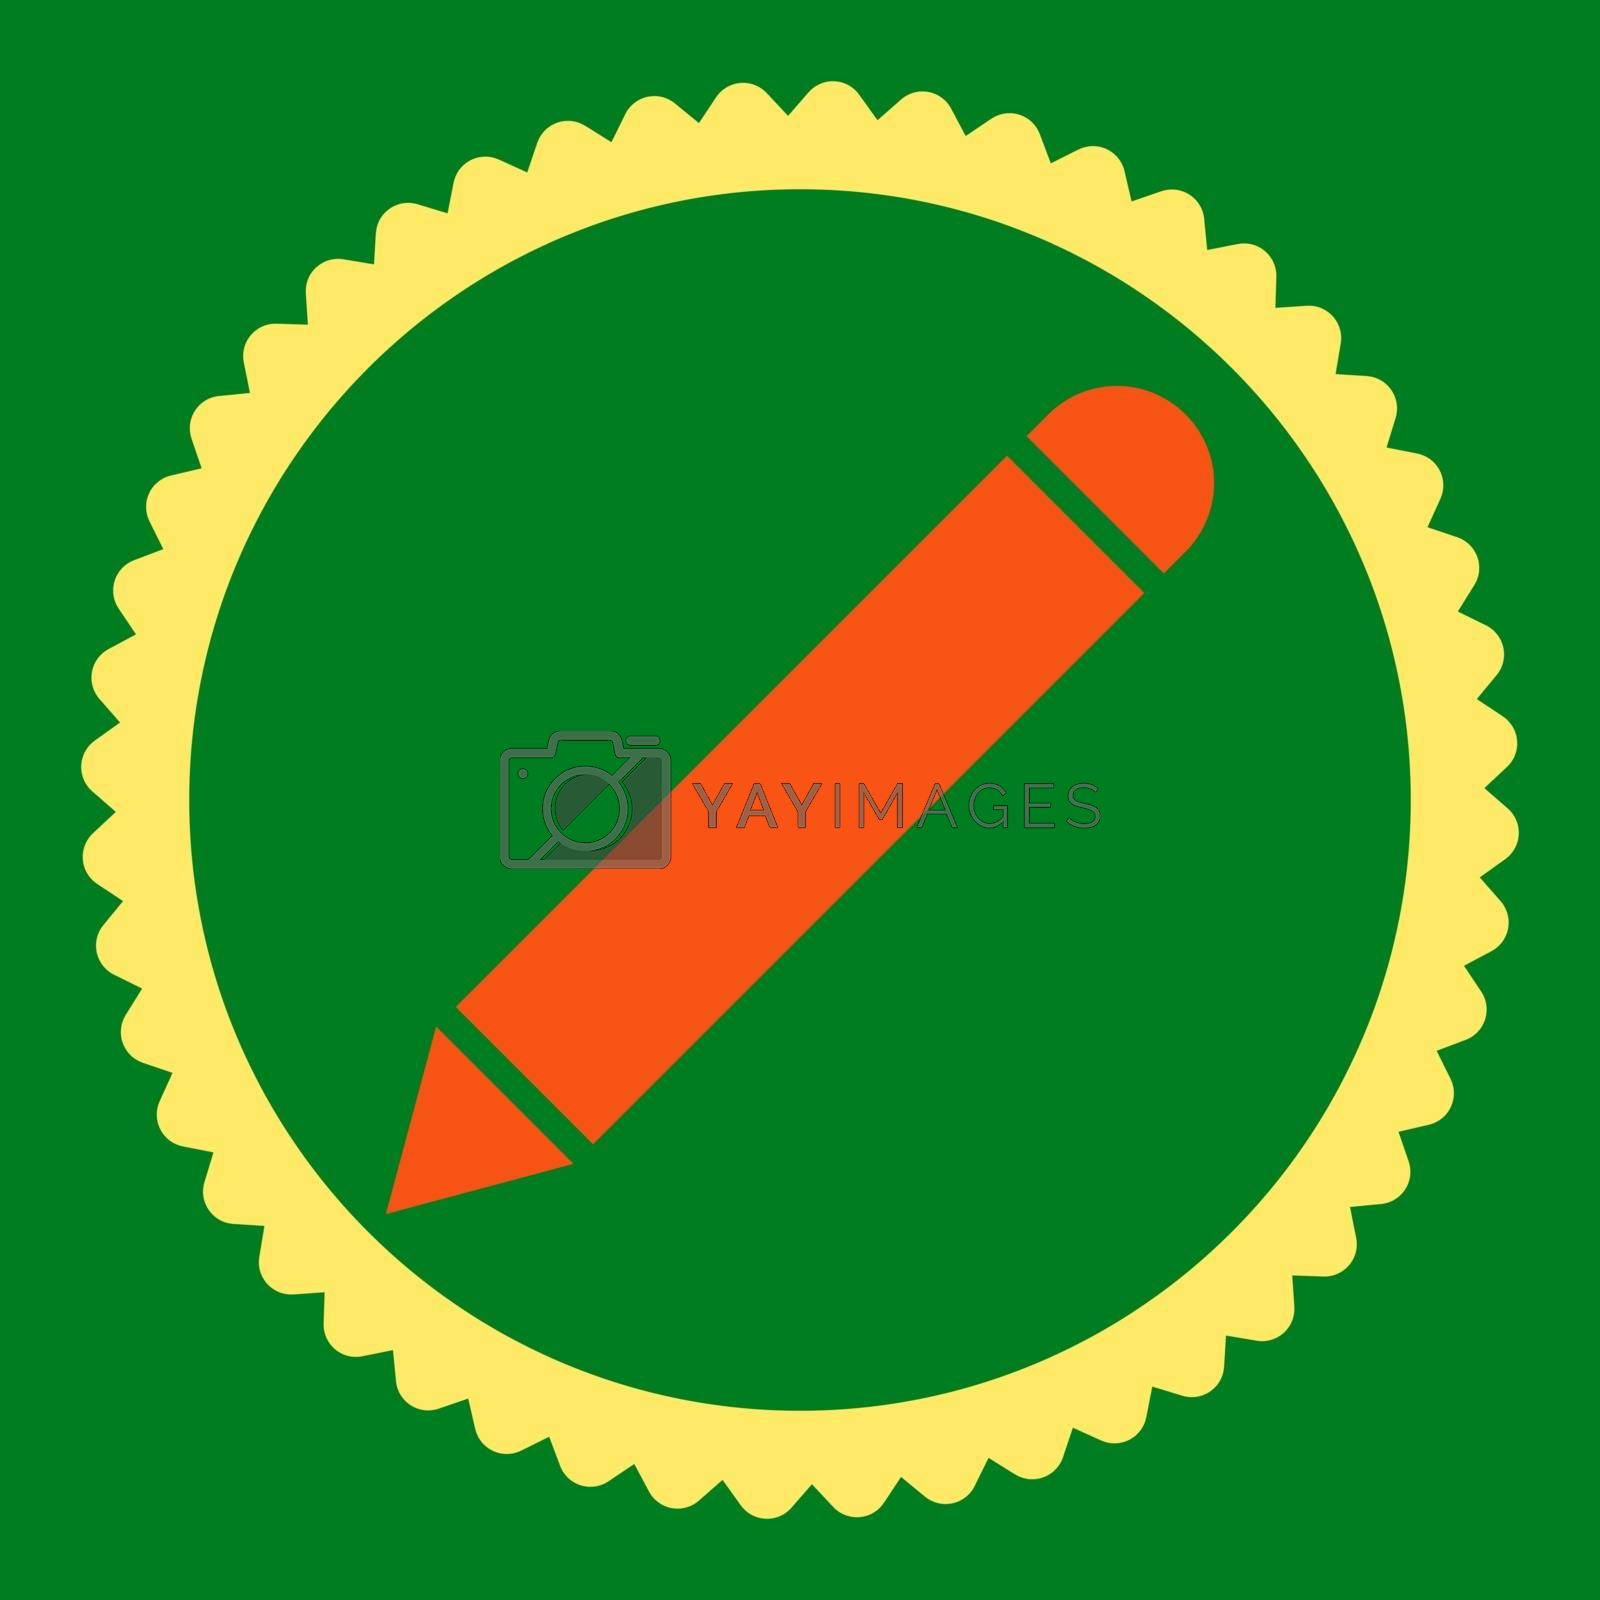 Pencil flat orange and yellow colors round stamp icon by Aha-Soft